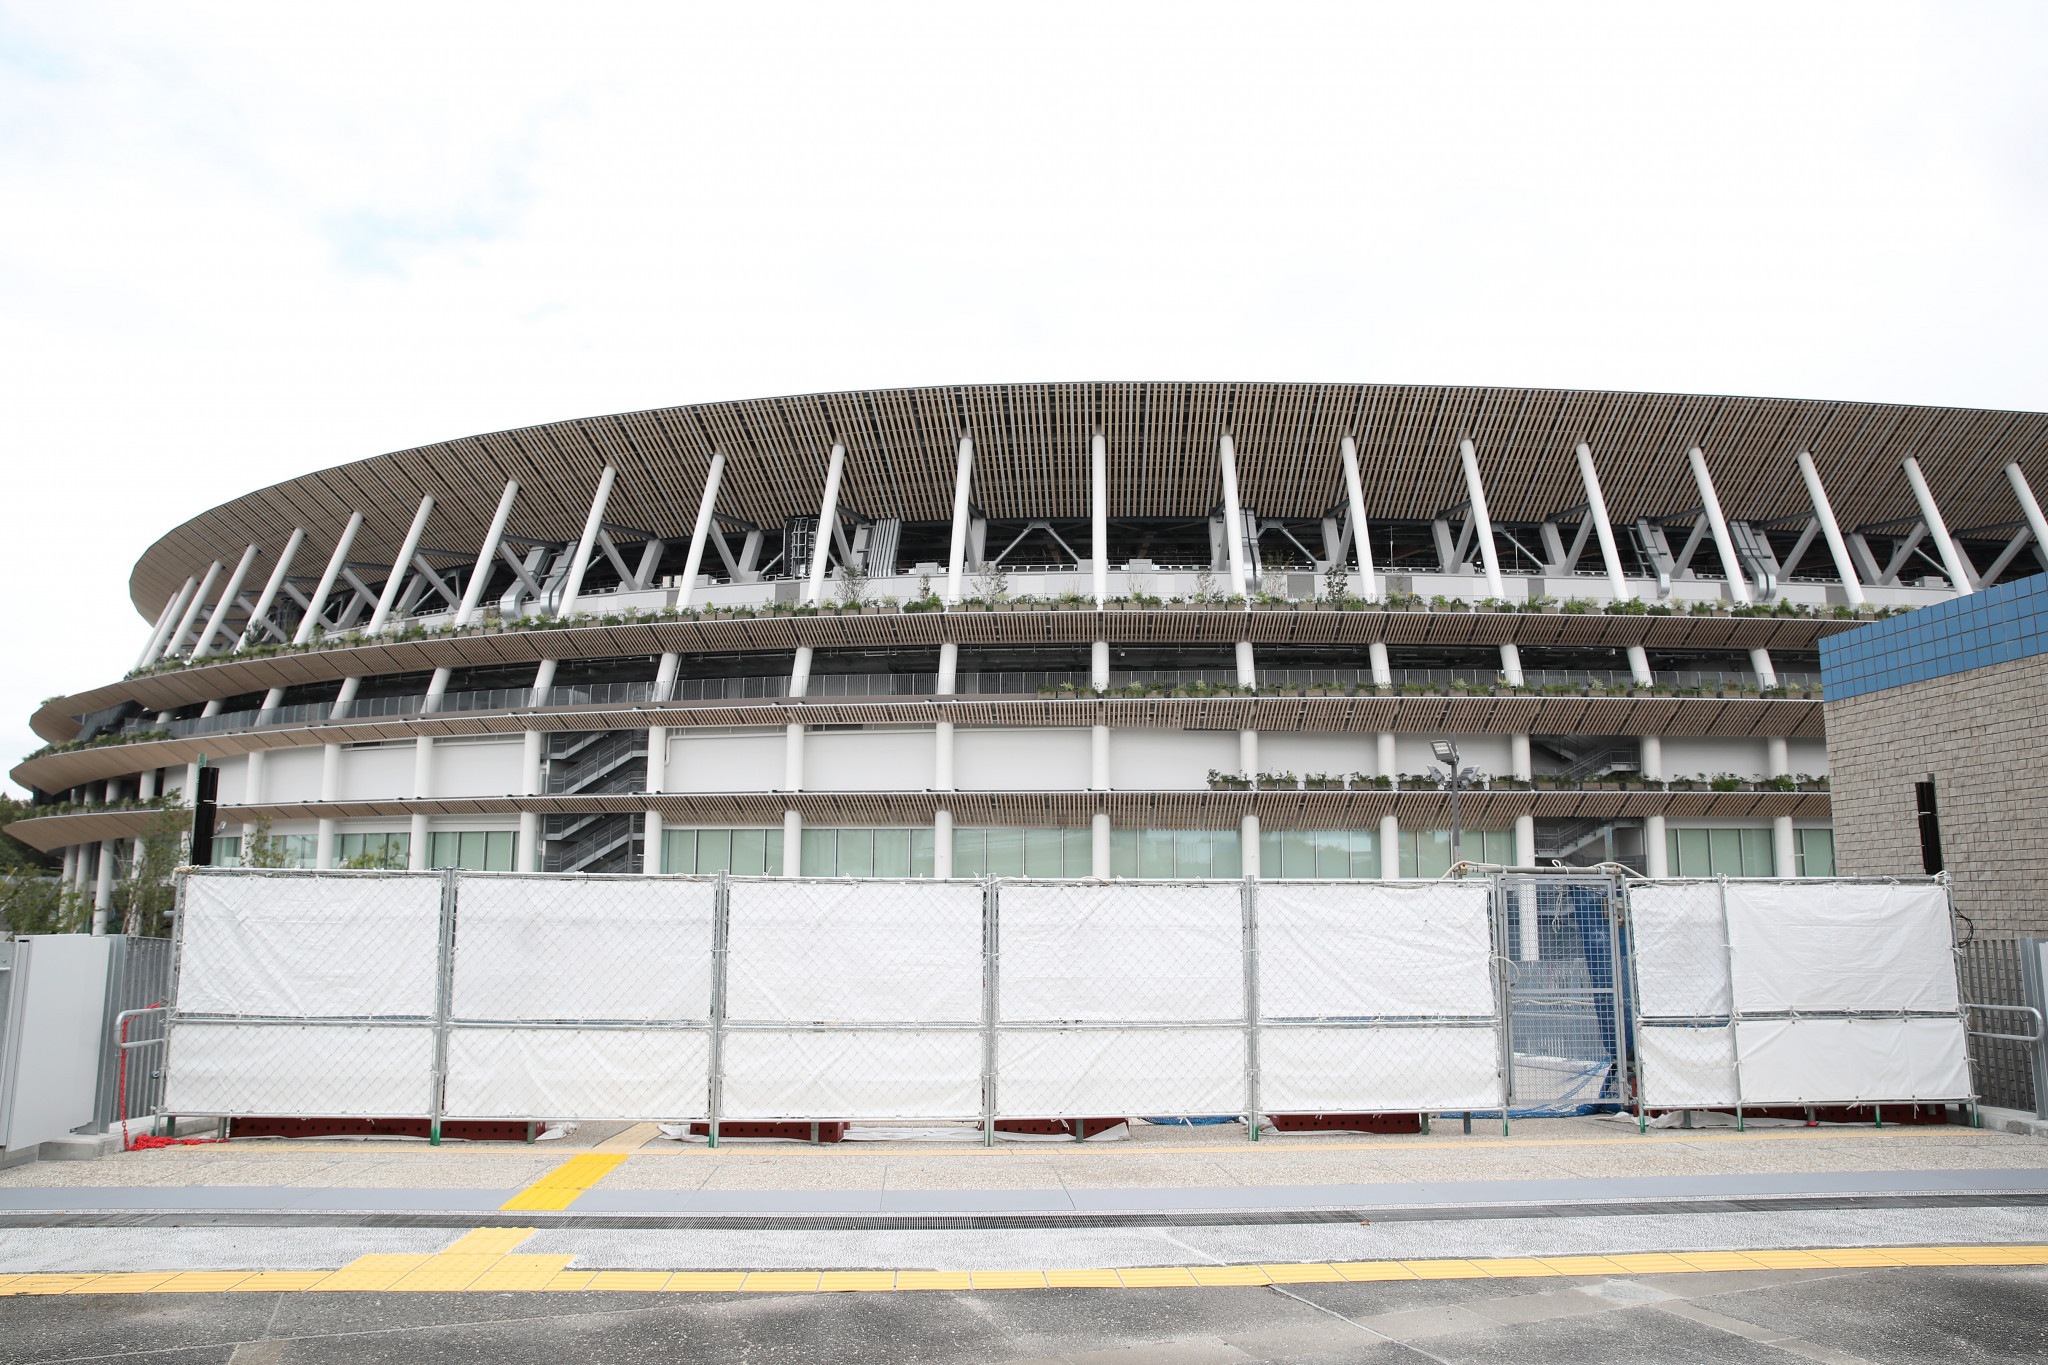 The Olympic Stadium in Tokyo will be inaugurated on December 21 ©Getty Images